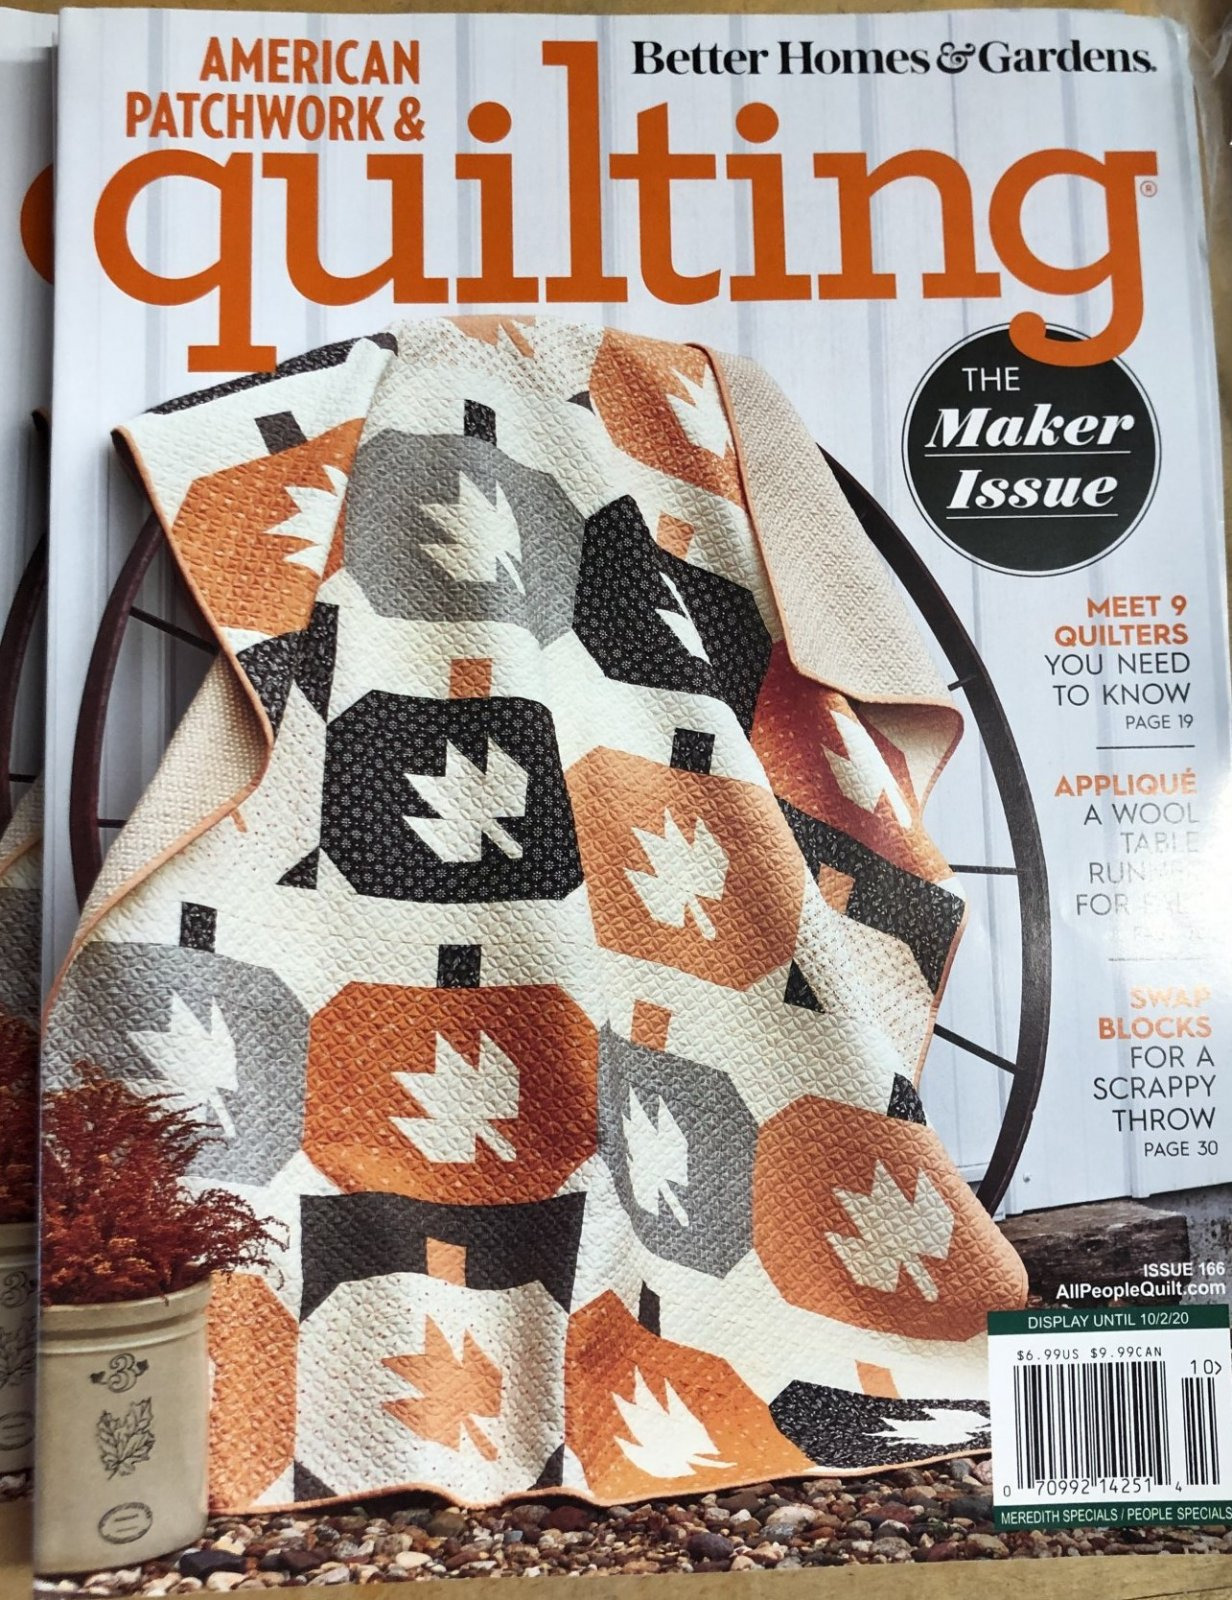 American Patchwork and Quilting Magazine - October 2020 Issue 166